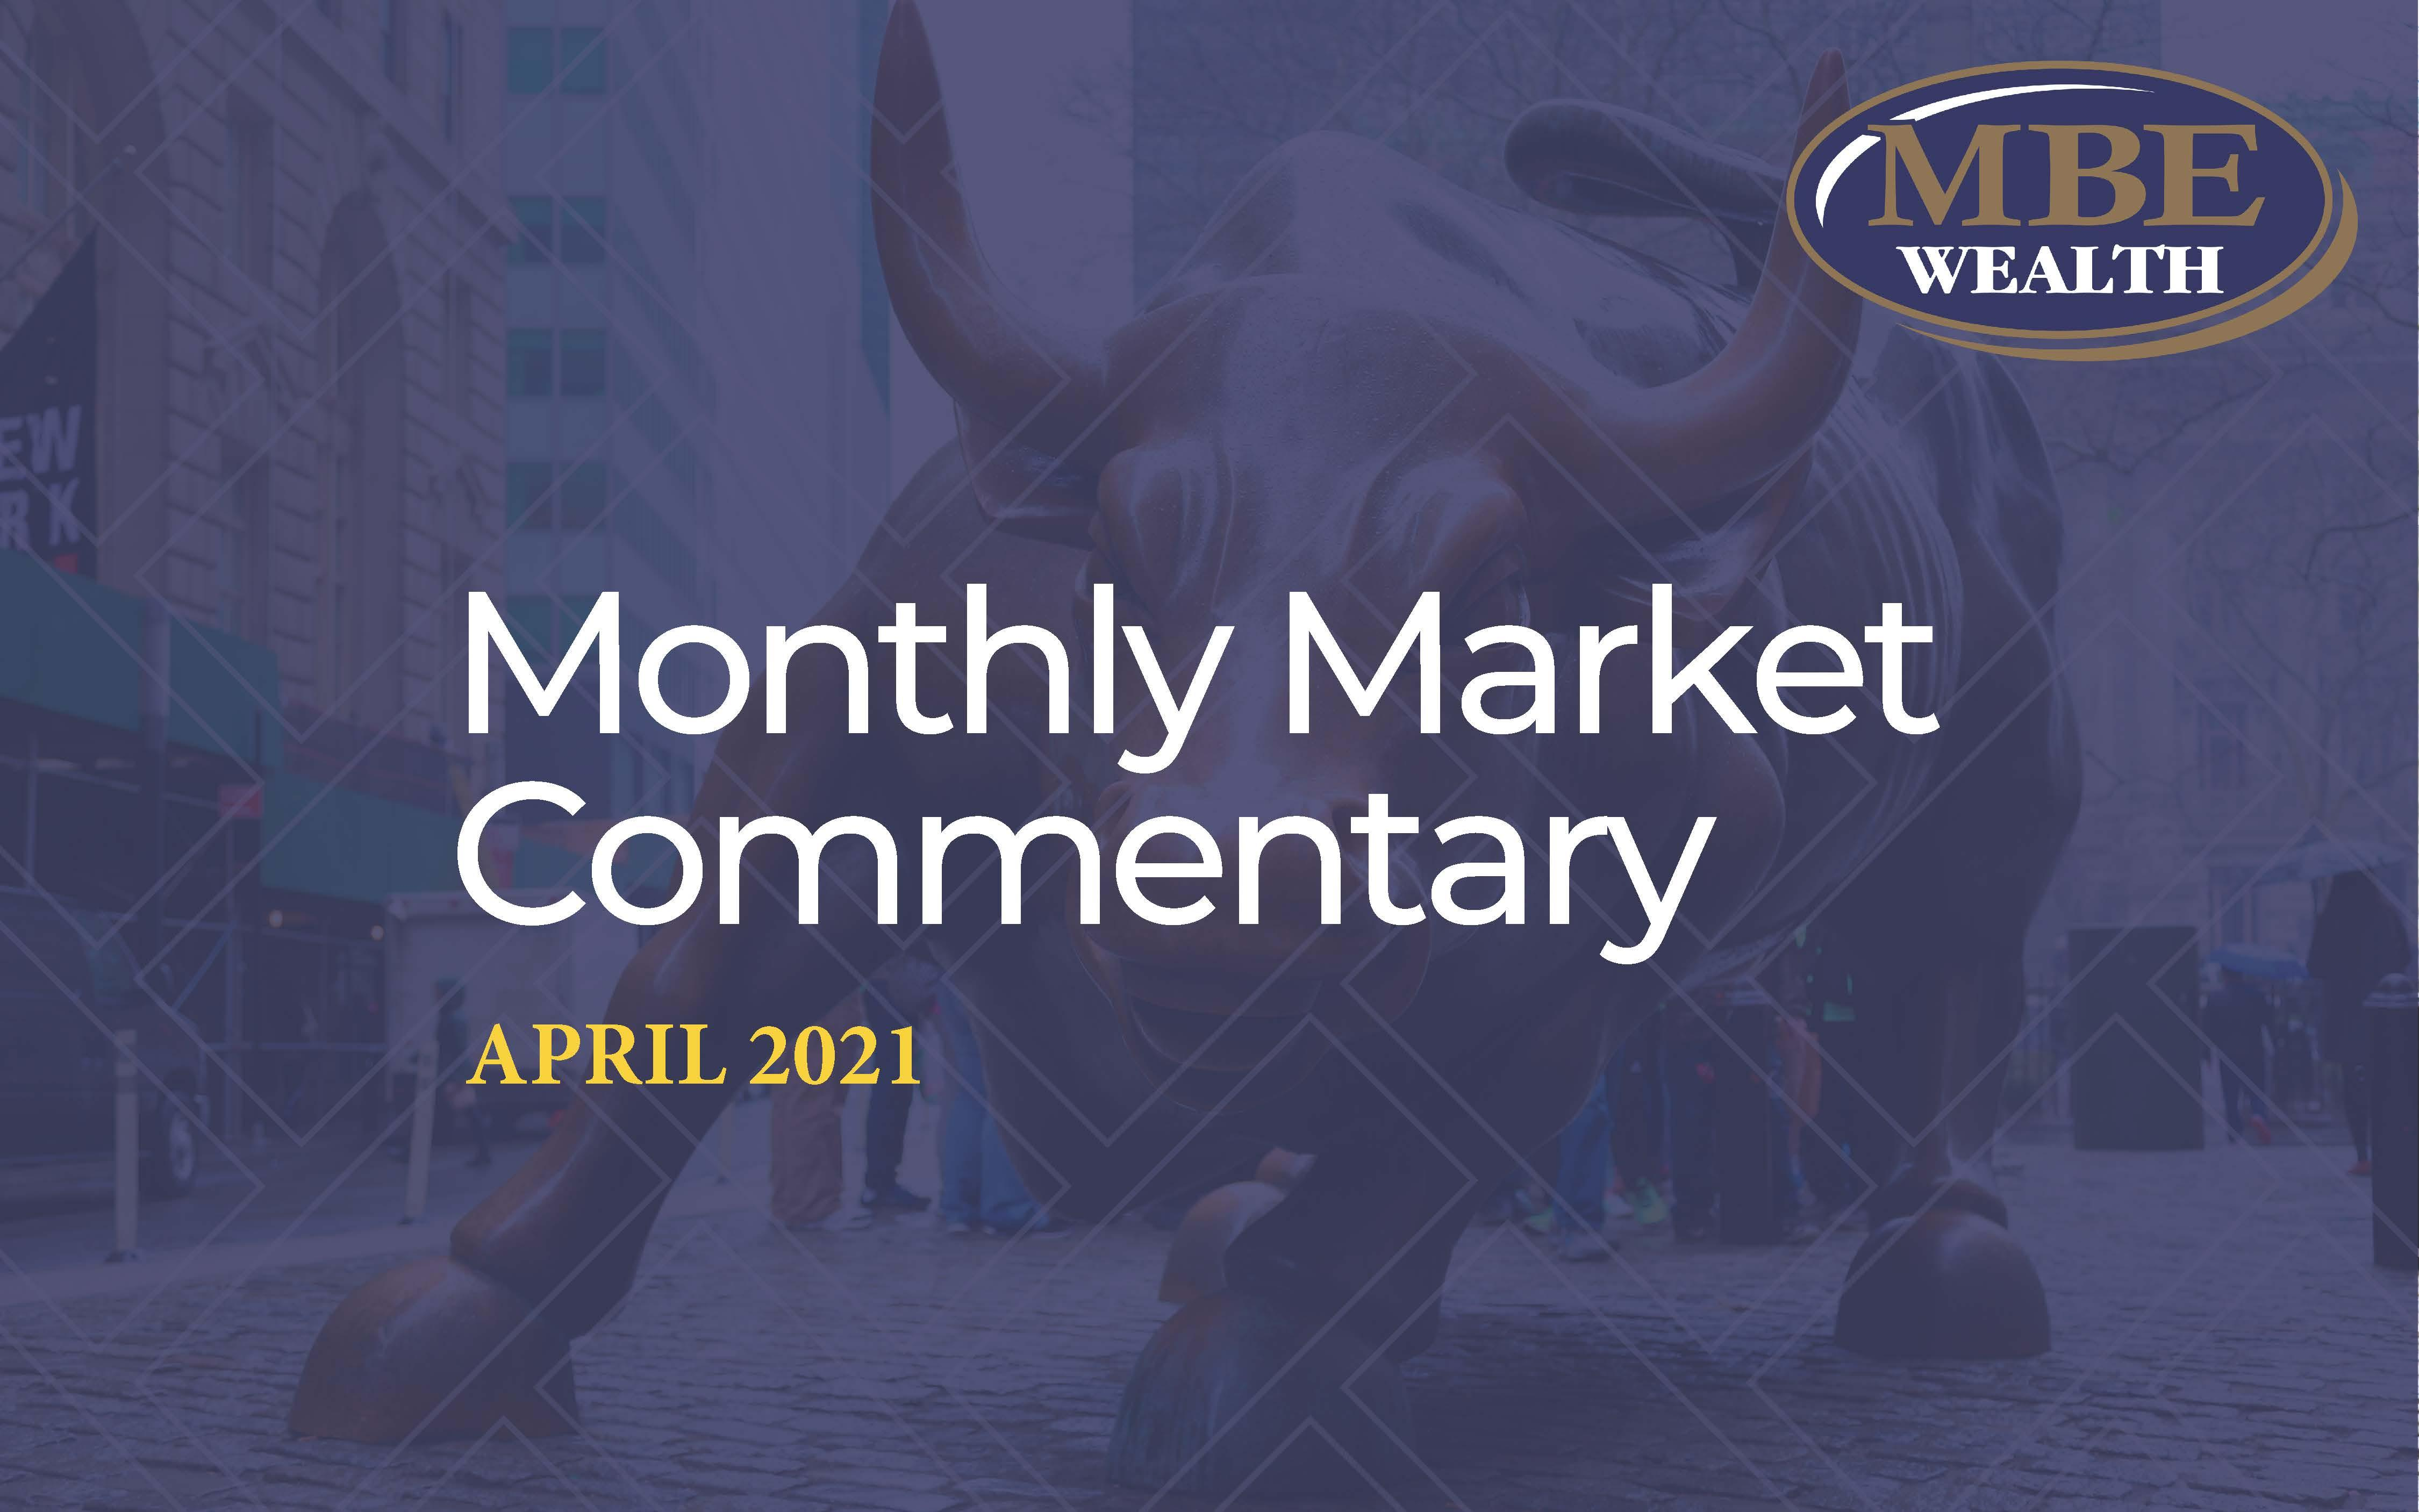 April 2021 MBE Wealth Market Commentary Thumbnail